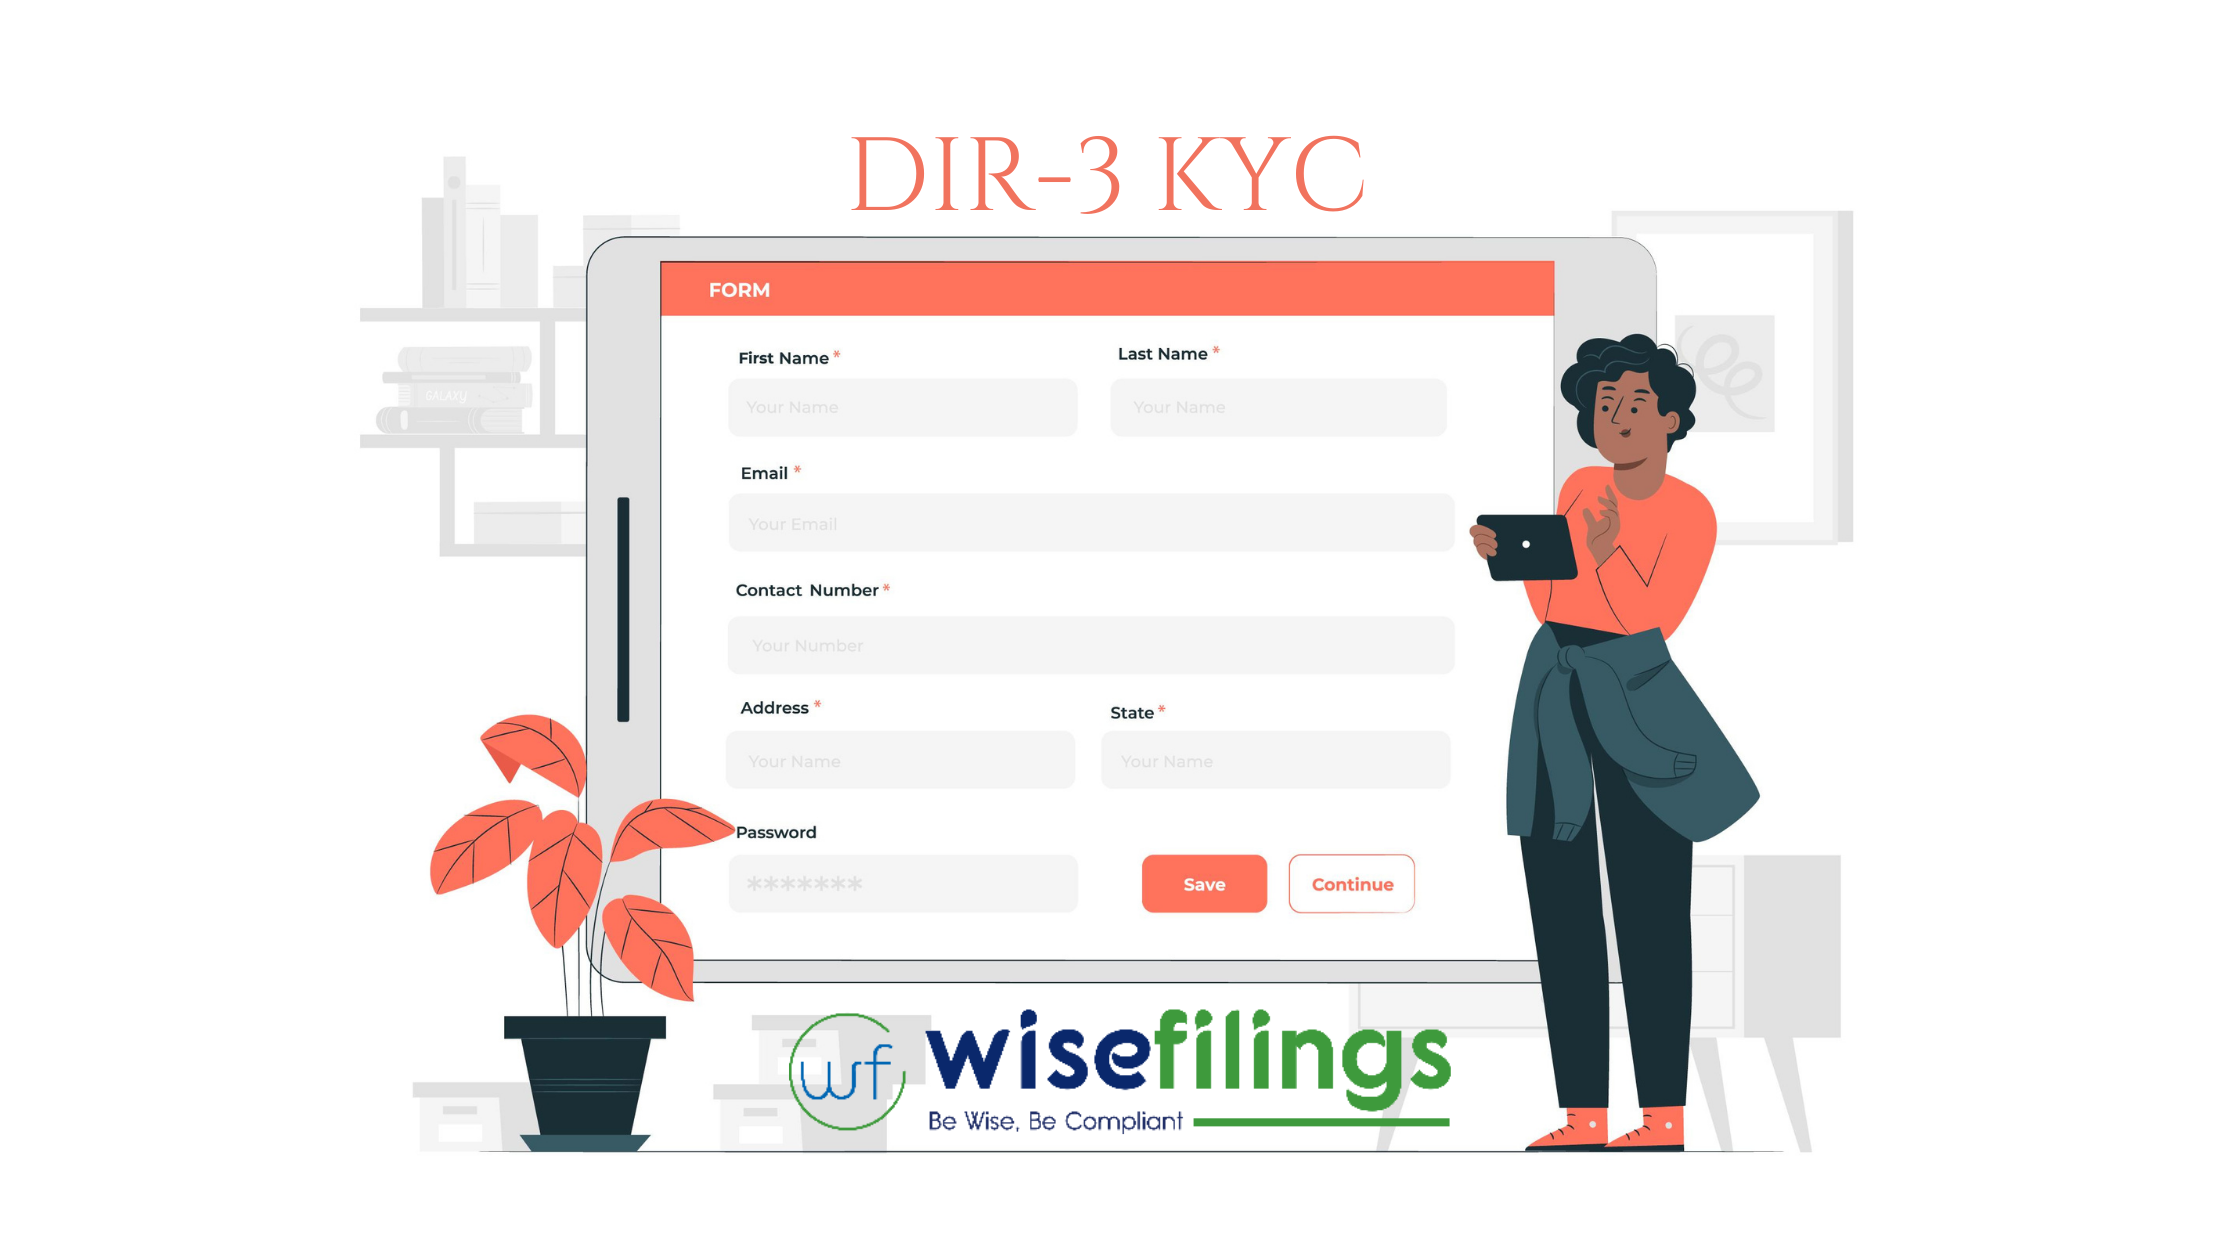 5 Things You Should Know About form DIR-3 KYC